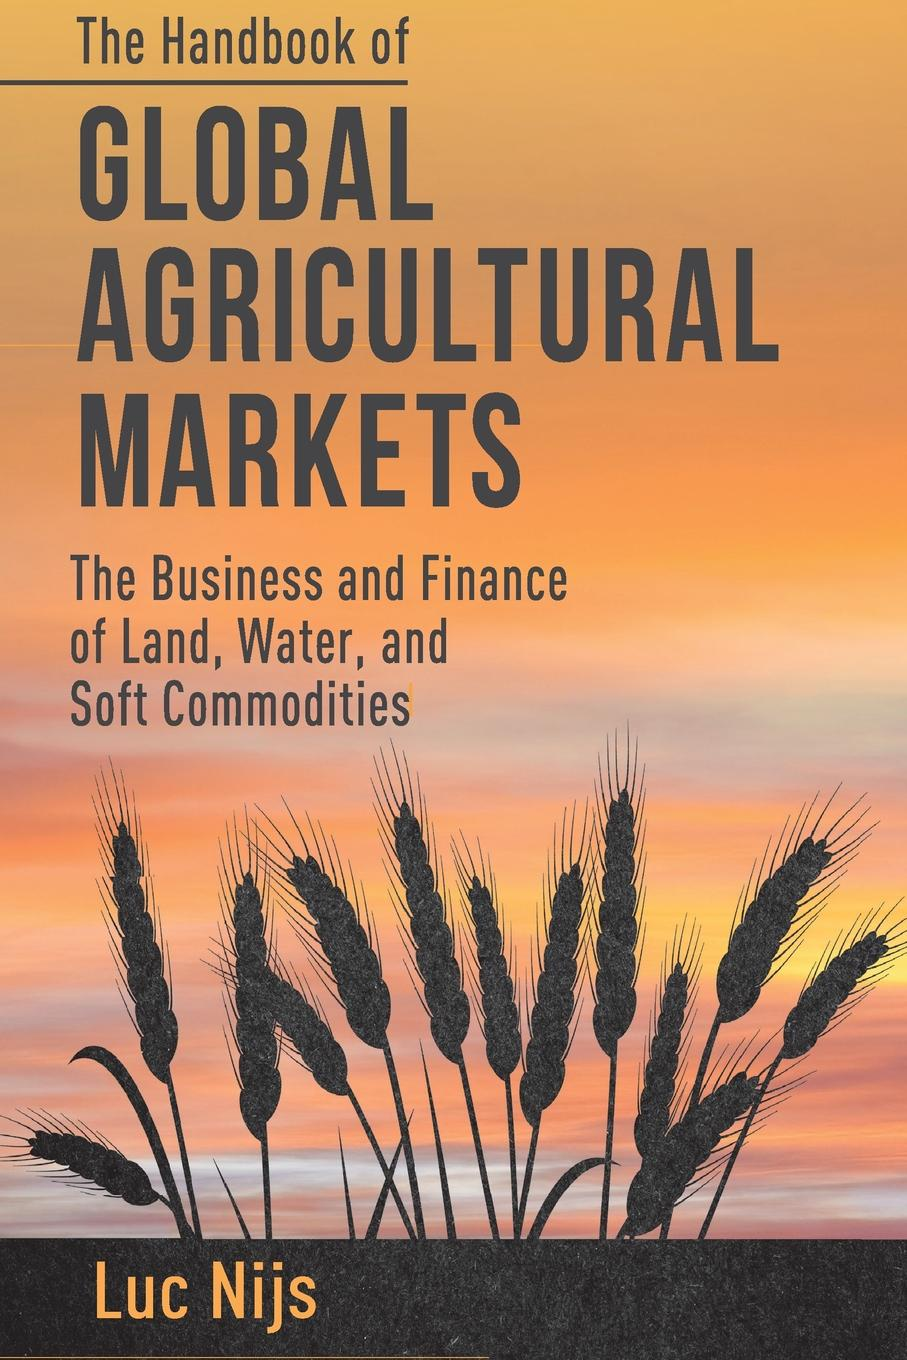 L. Nijs The Handbook of Global Agricultural Markets. Business and Finance Land, Water, Soft Commodities